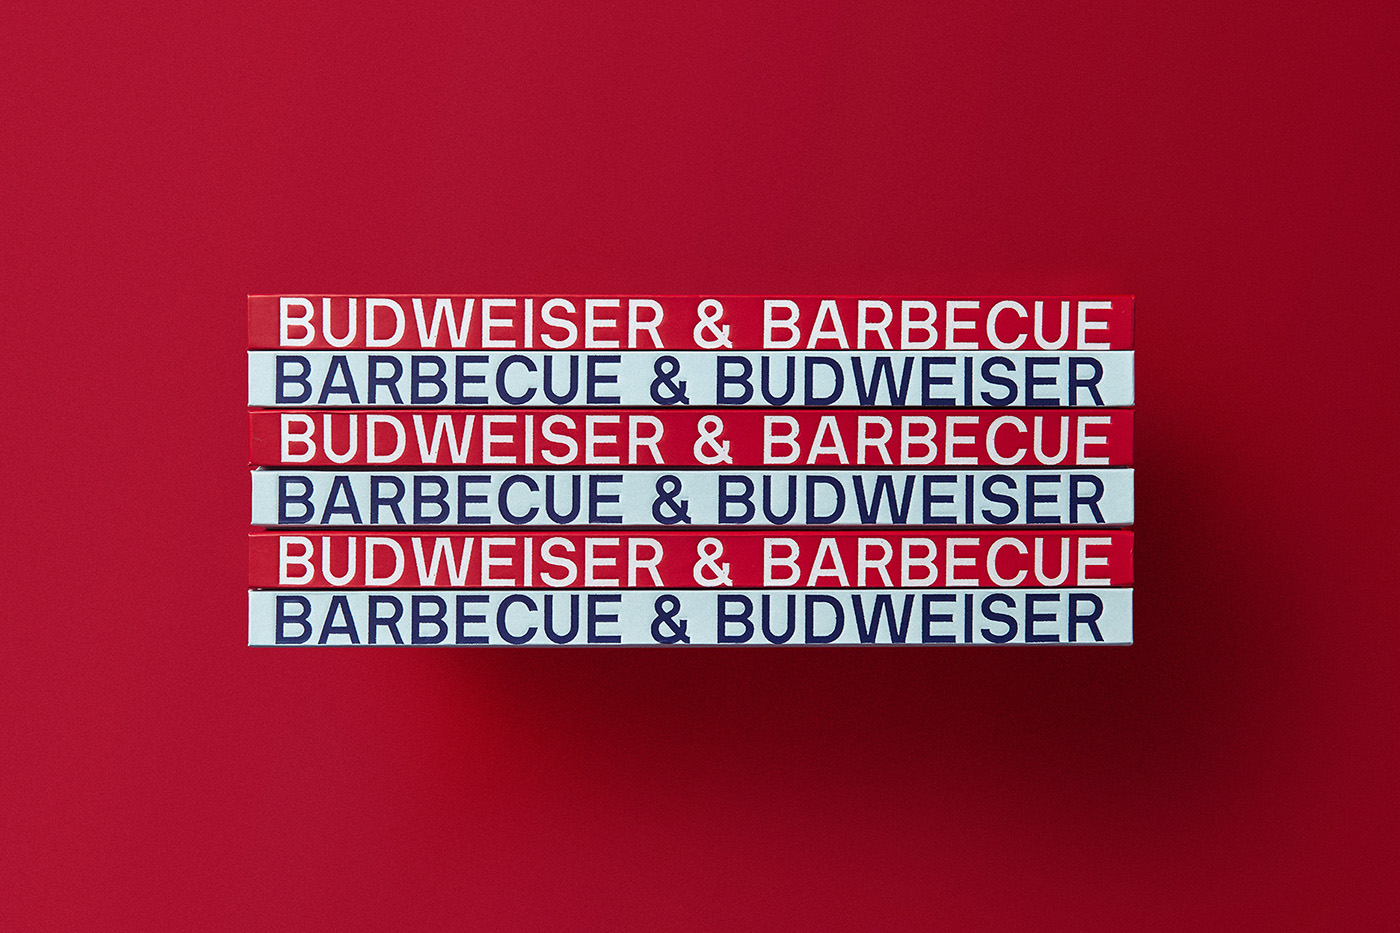 rgb-creative-Budweiser-Barbecue-4